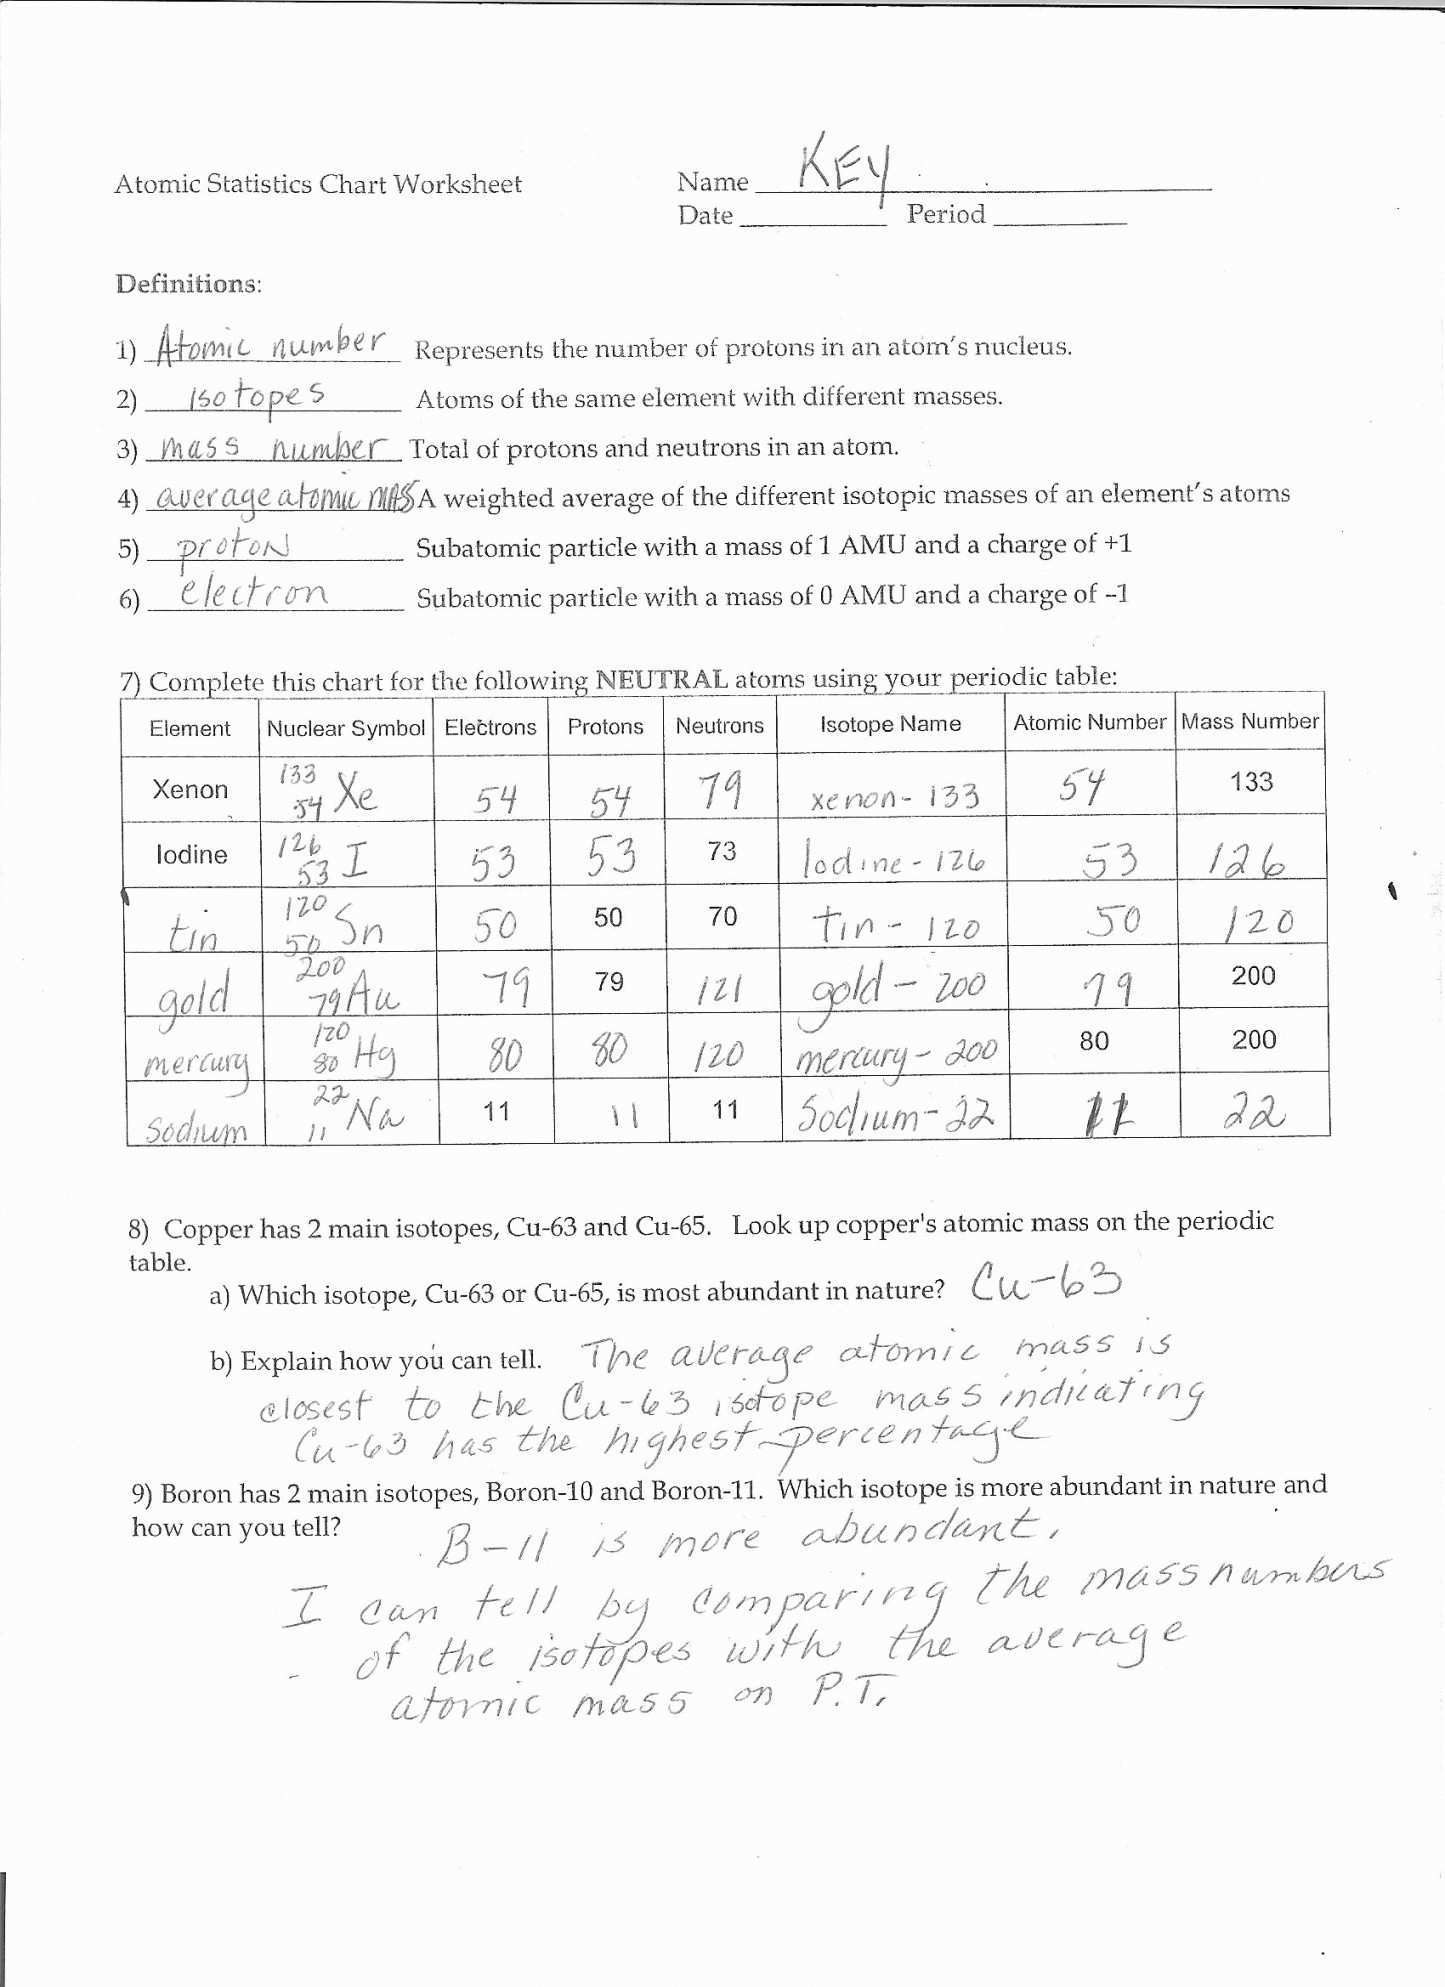 Atomic Structure Diagram Worksheet Answers